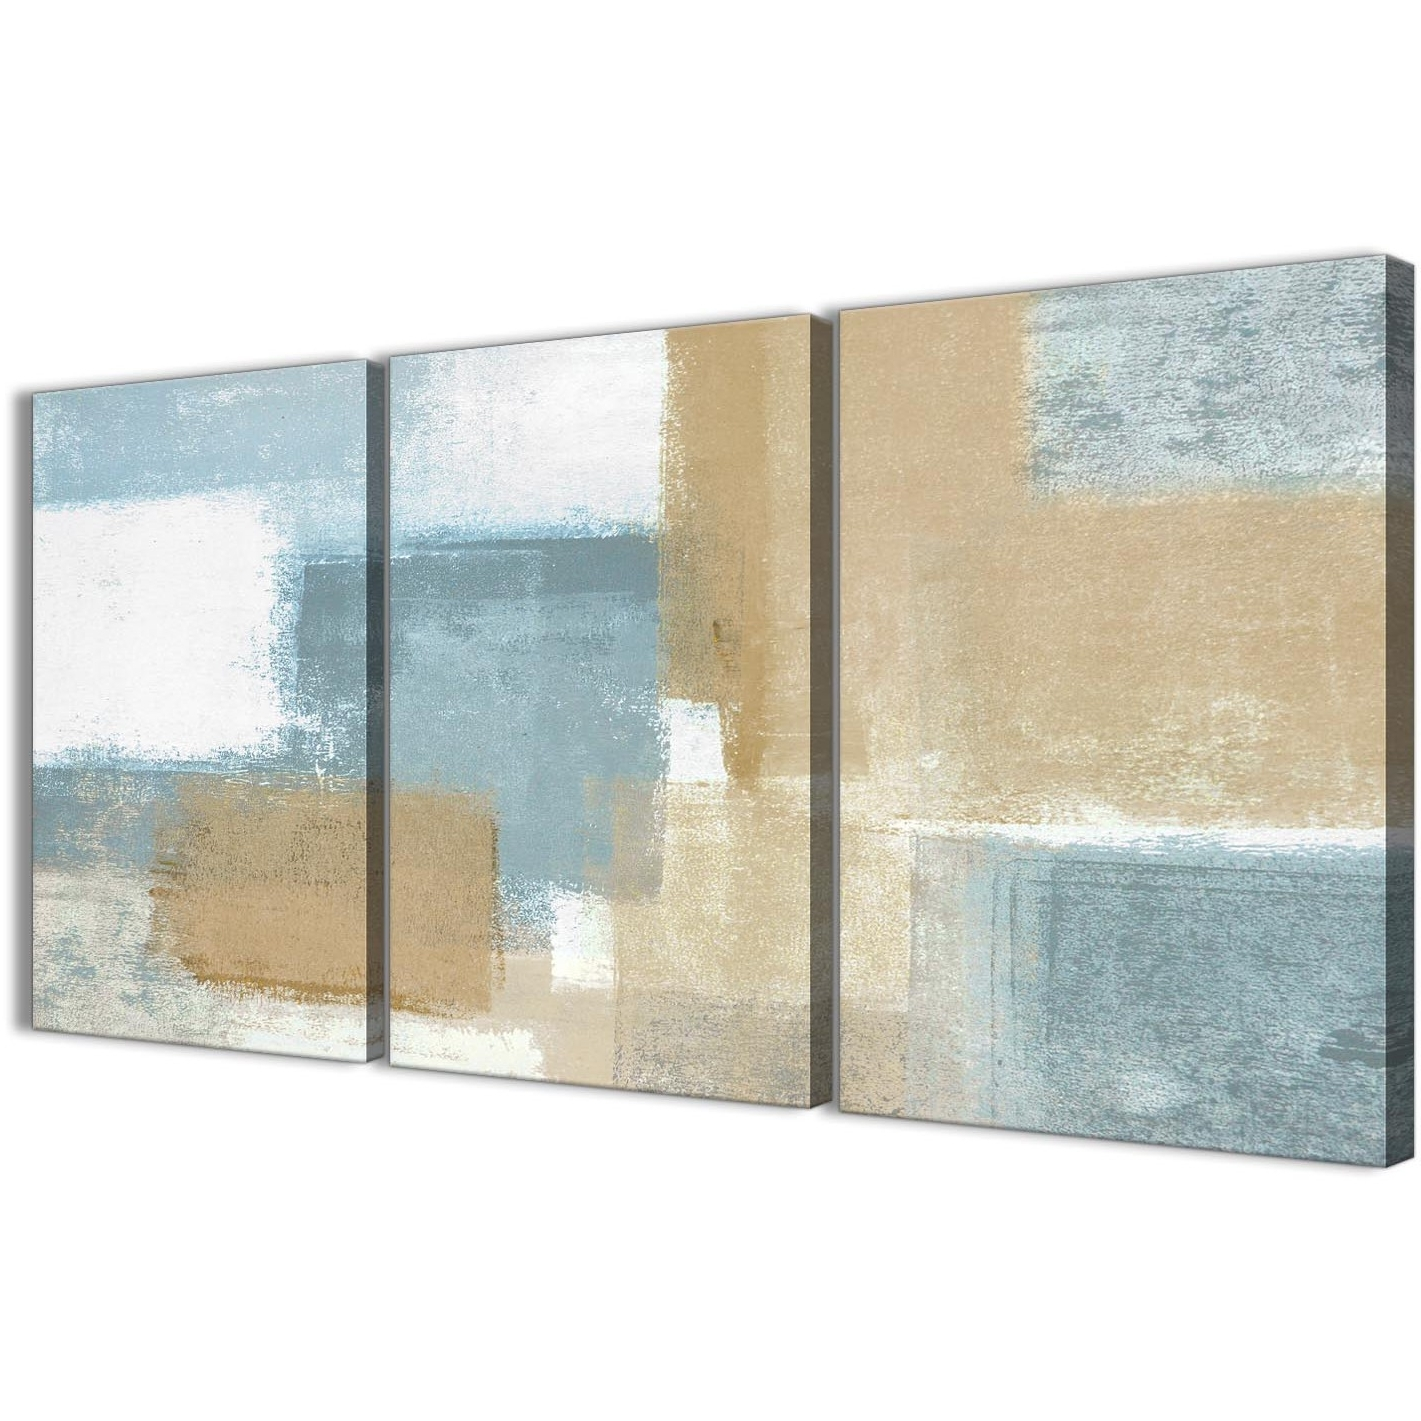 Blue Beige Brown Abstract Painting Canvas Wall Art Print – Multi With Widely Used Blue And Brown Canvas Wall Art (Gallery 13 of 15)